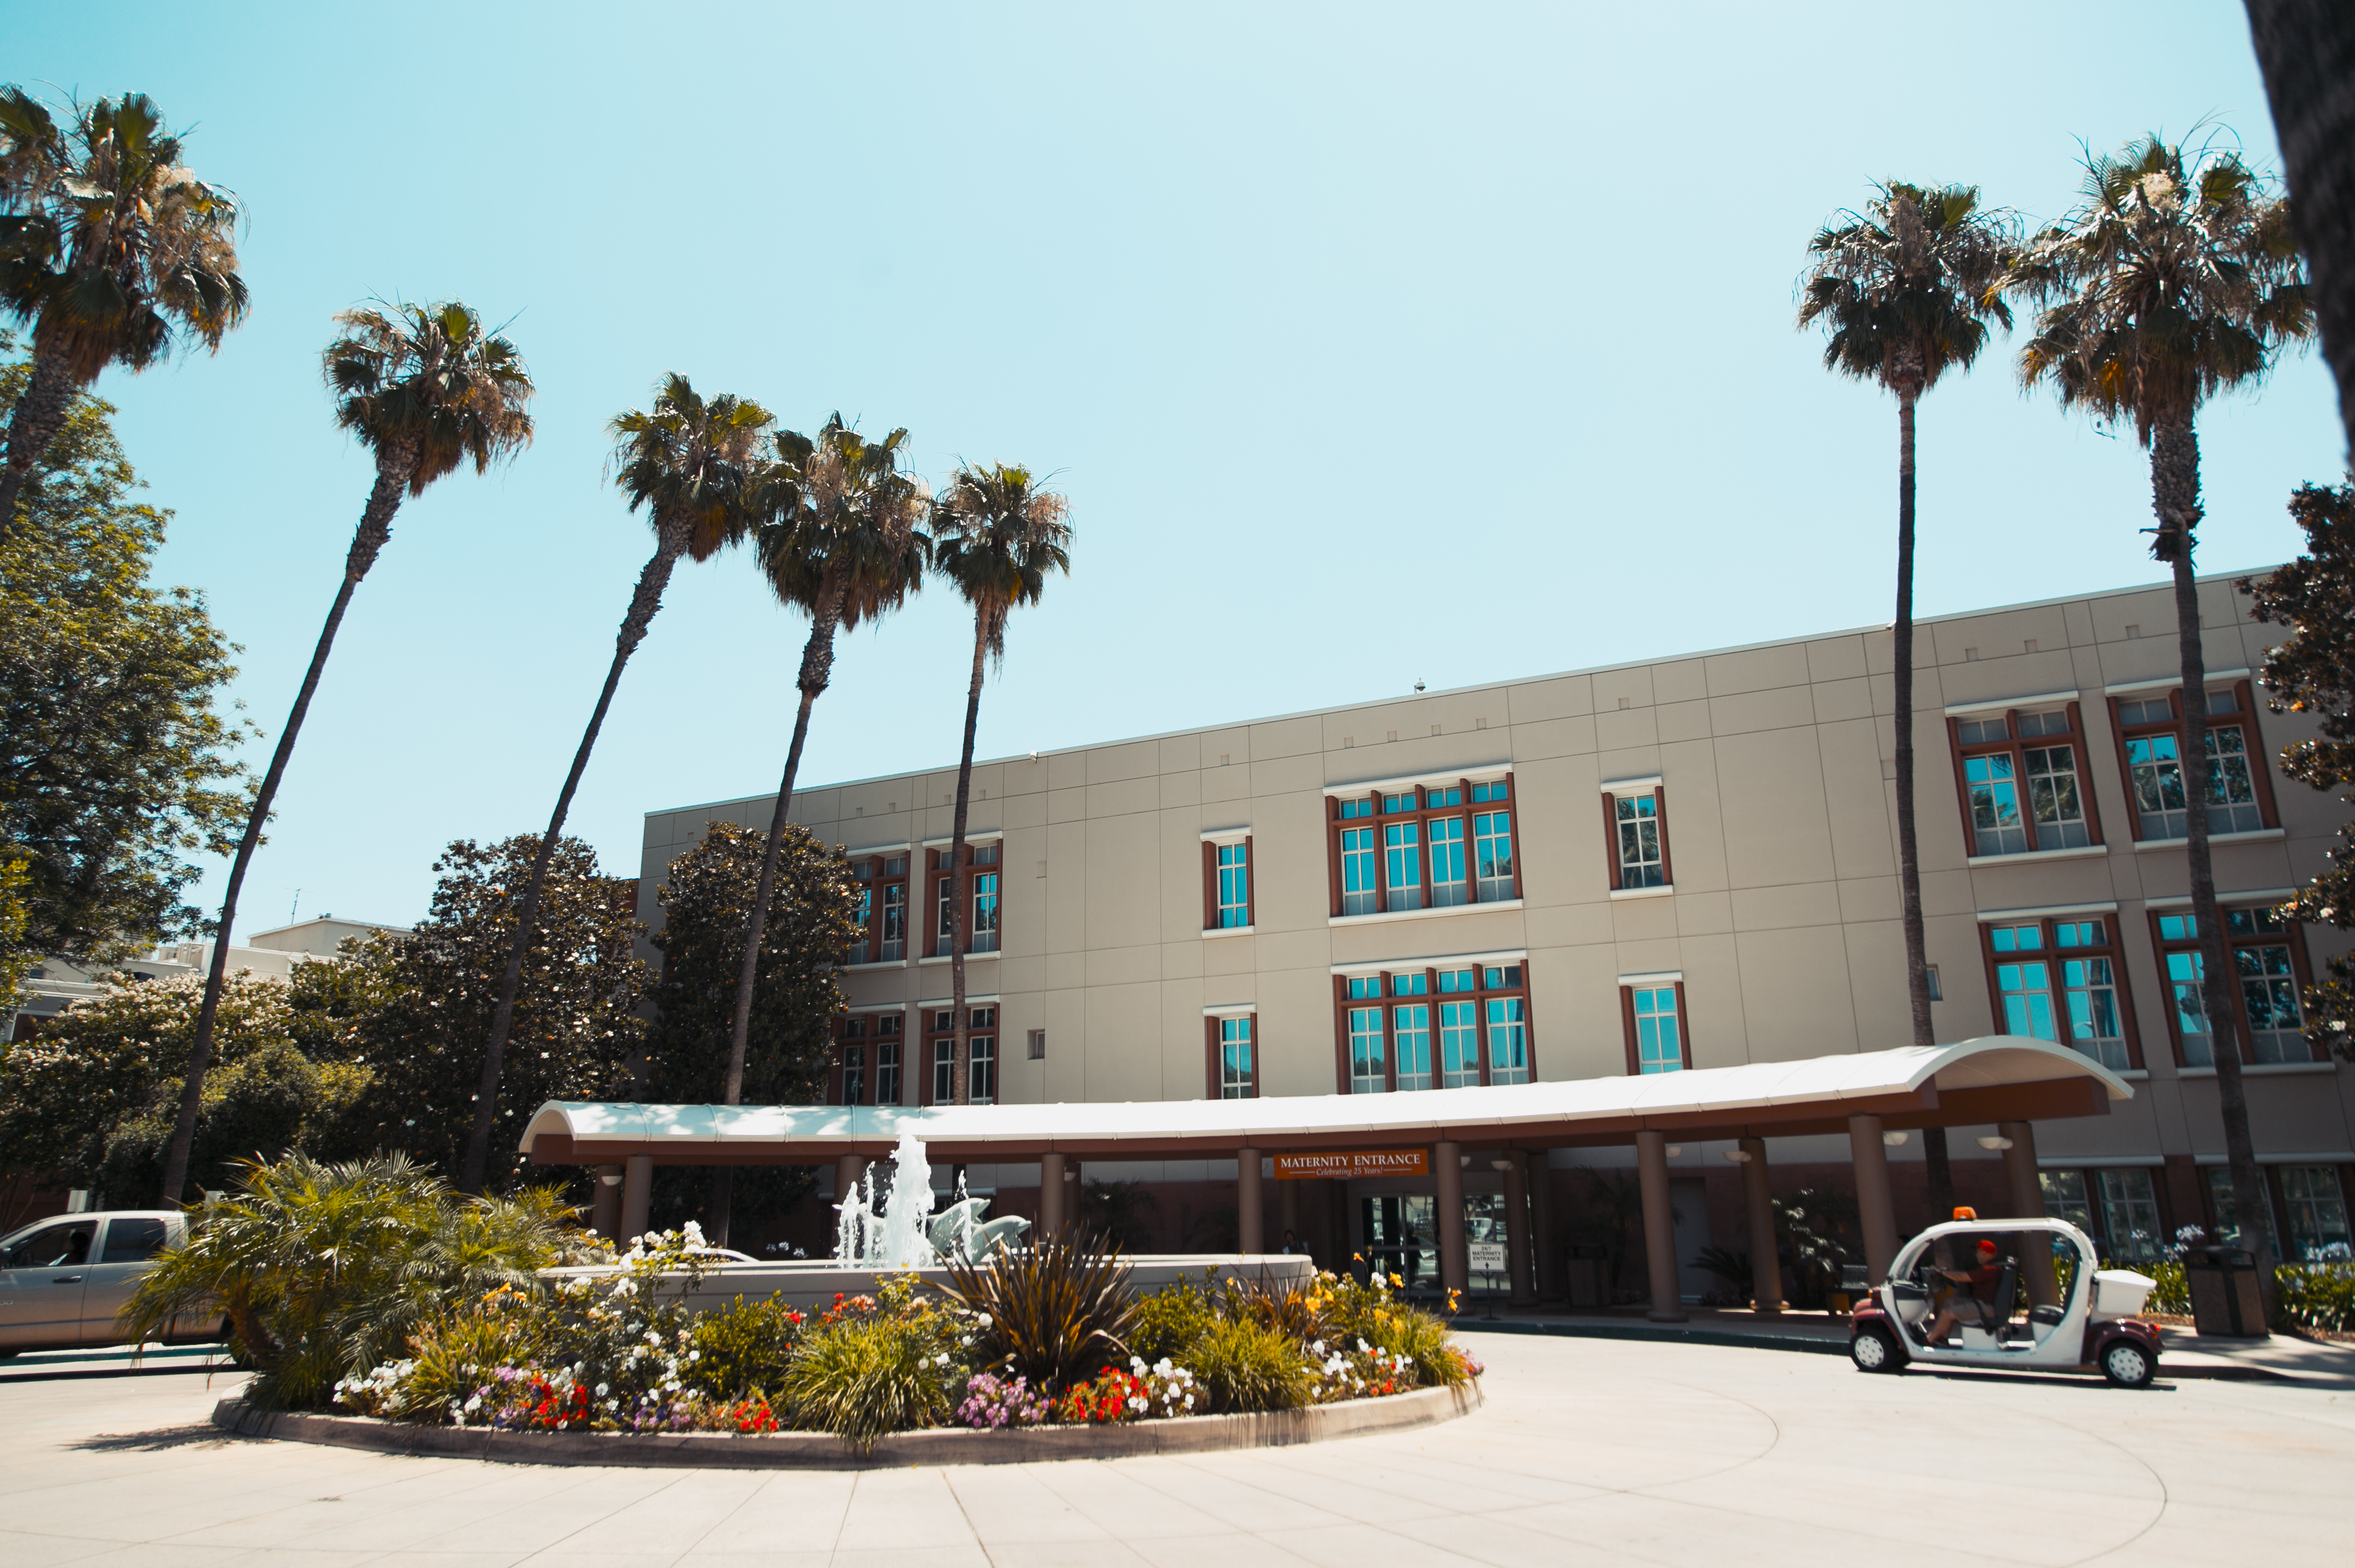 Pomona Valley Hospital Medical Center, a member of the California Maternal Quality Care Collaborative, is one of the state's largest birthing centers, delivering over 7,000 babies a year.